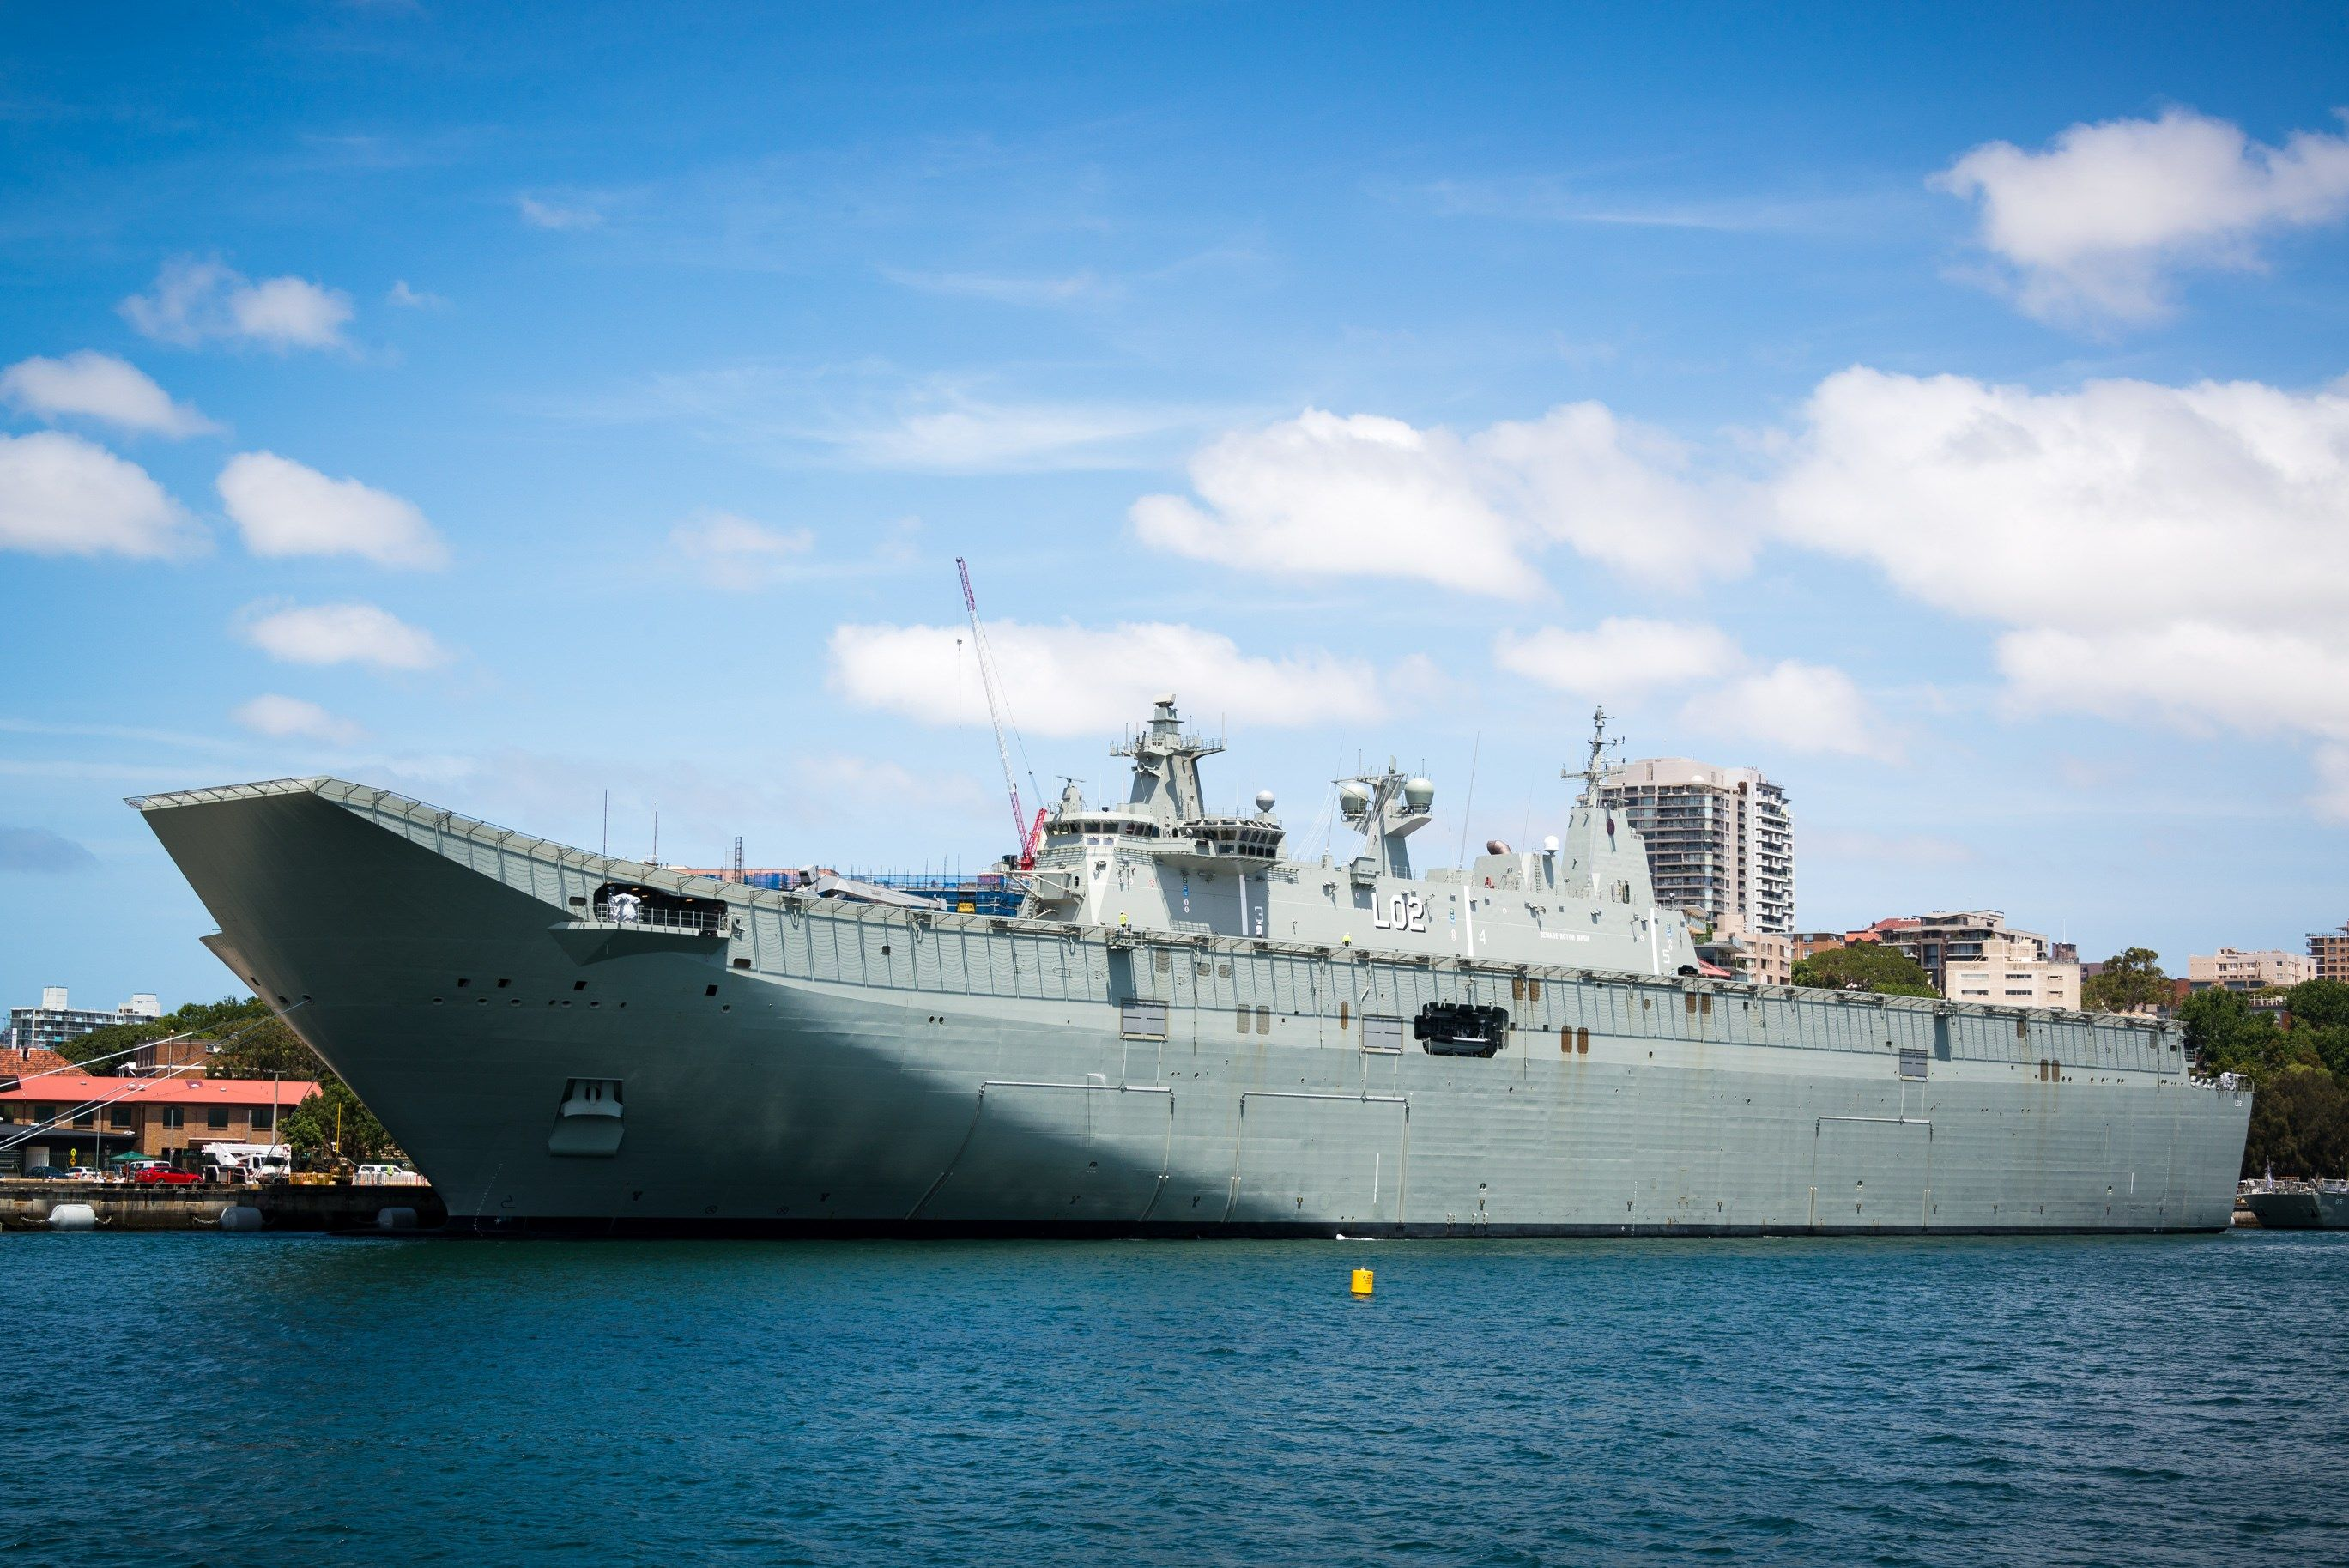 Unfortunately Sydney Harbor Is A Busy So Its Usually Only For Special Occasions They Dock In Maybe Once Every Five Years Or